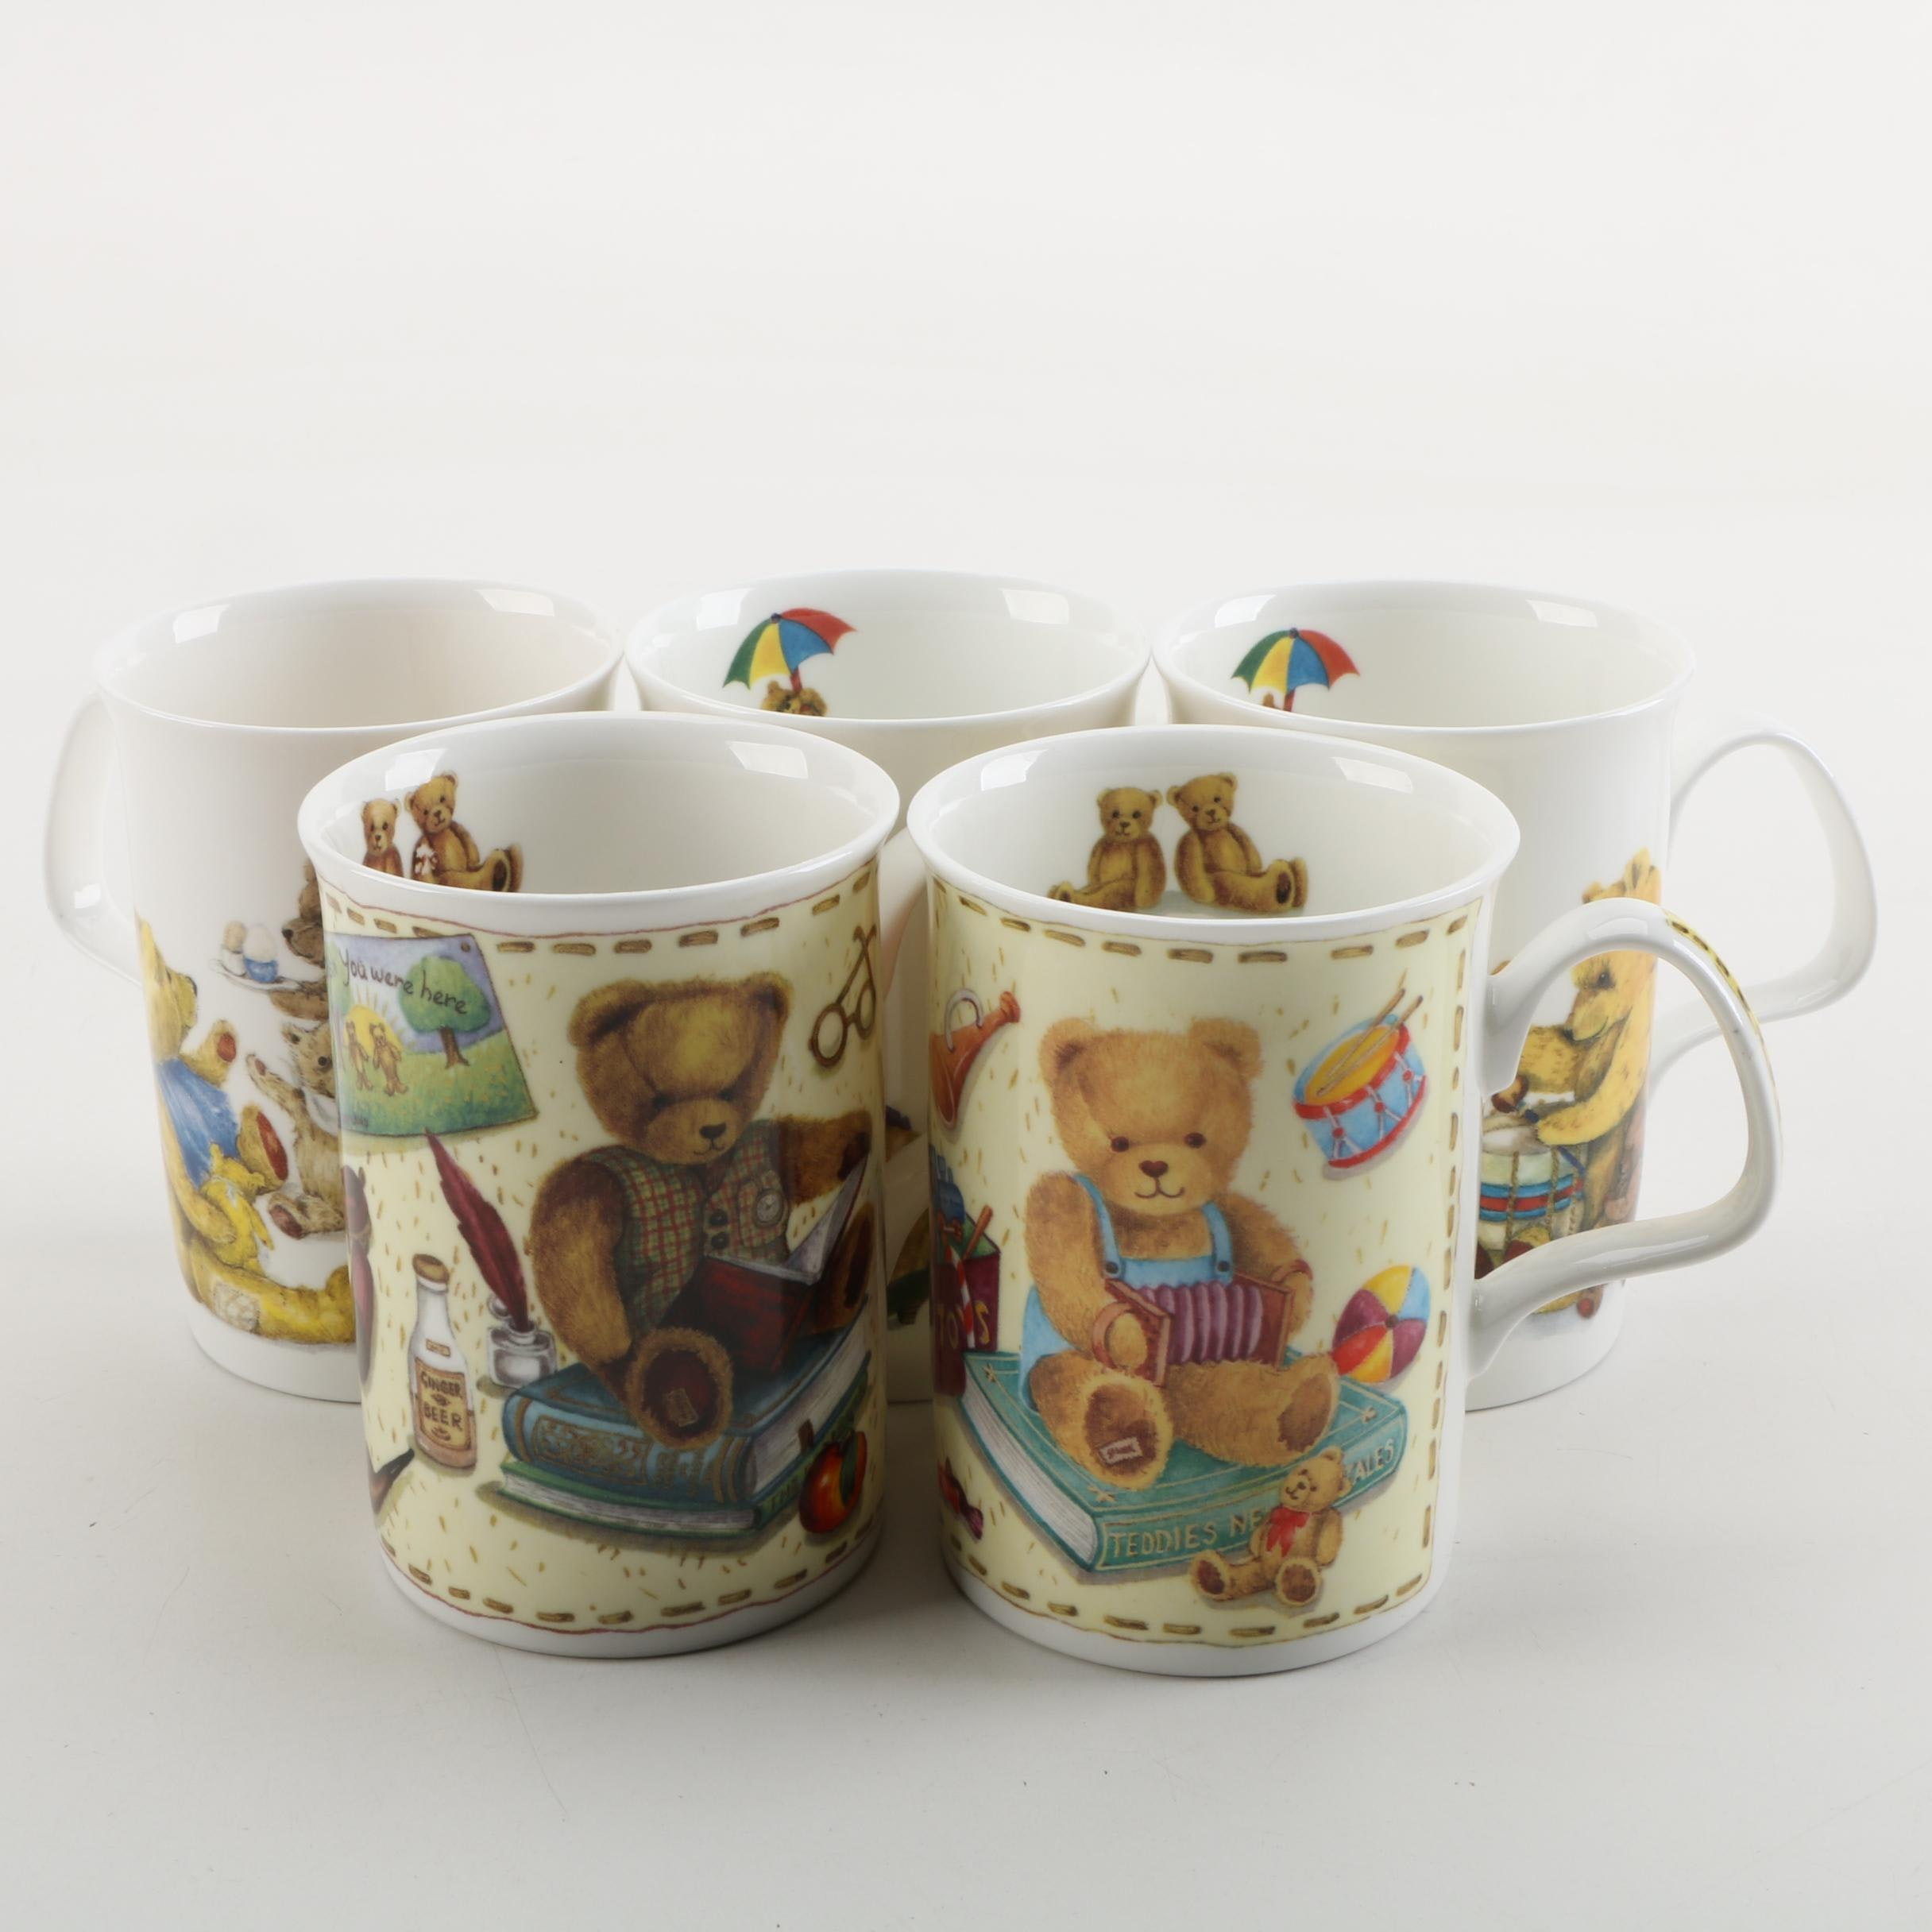 Teddy Bear Mugs from Lascelles and Roy Kirkham